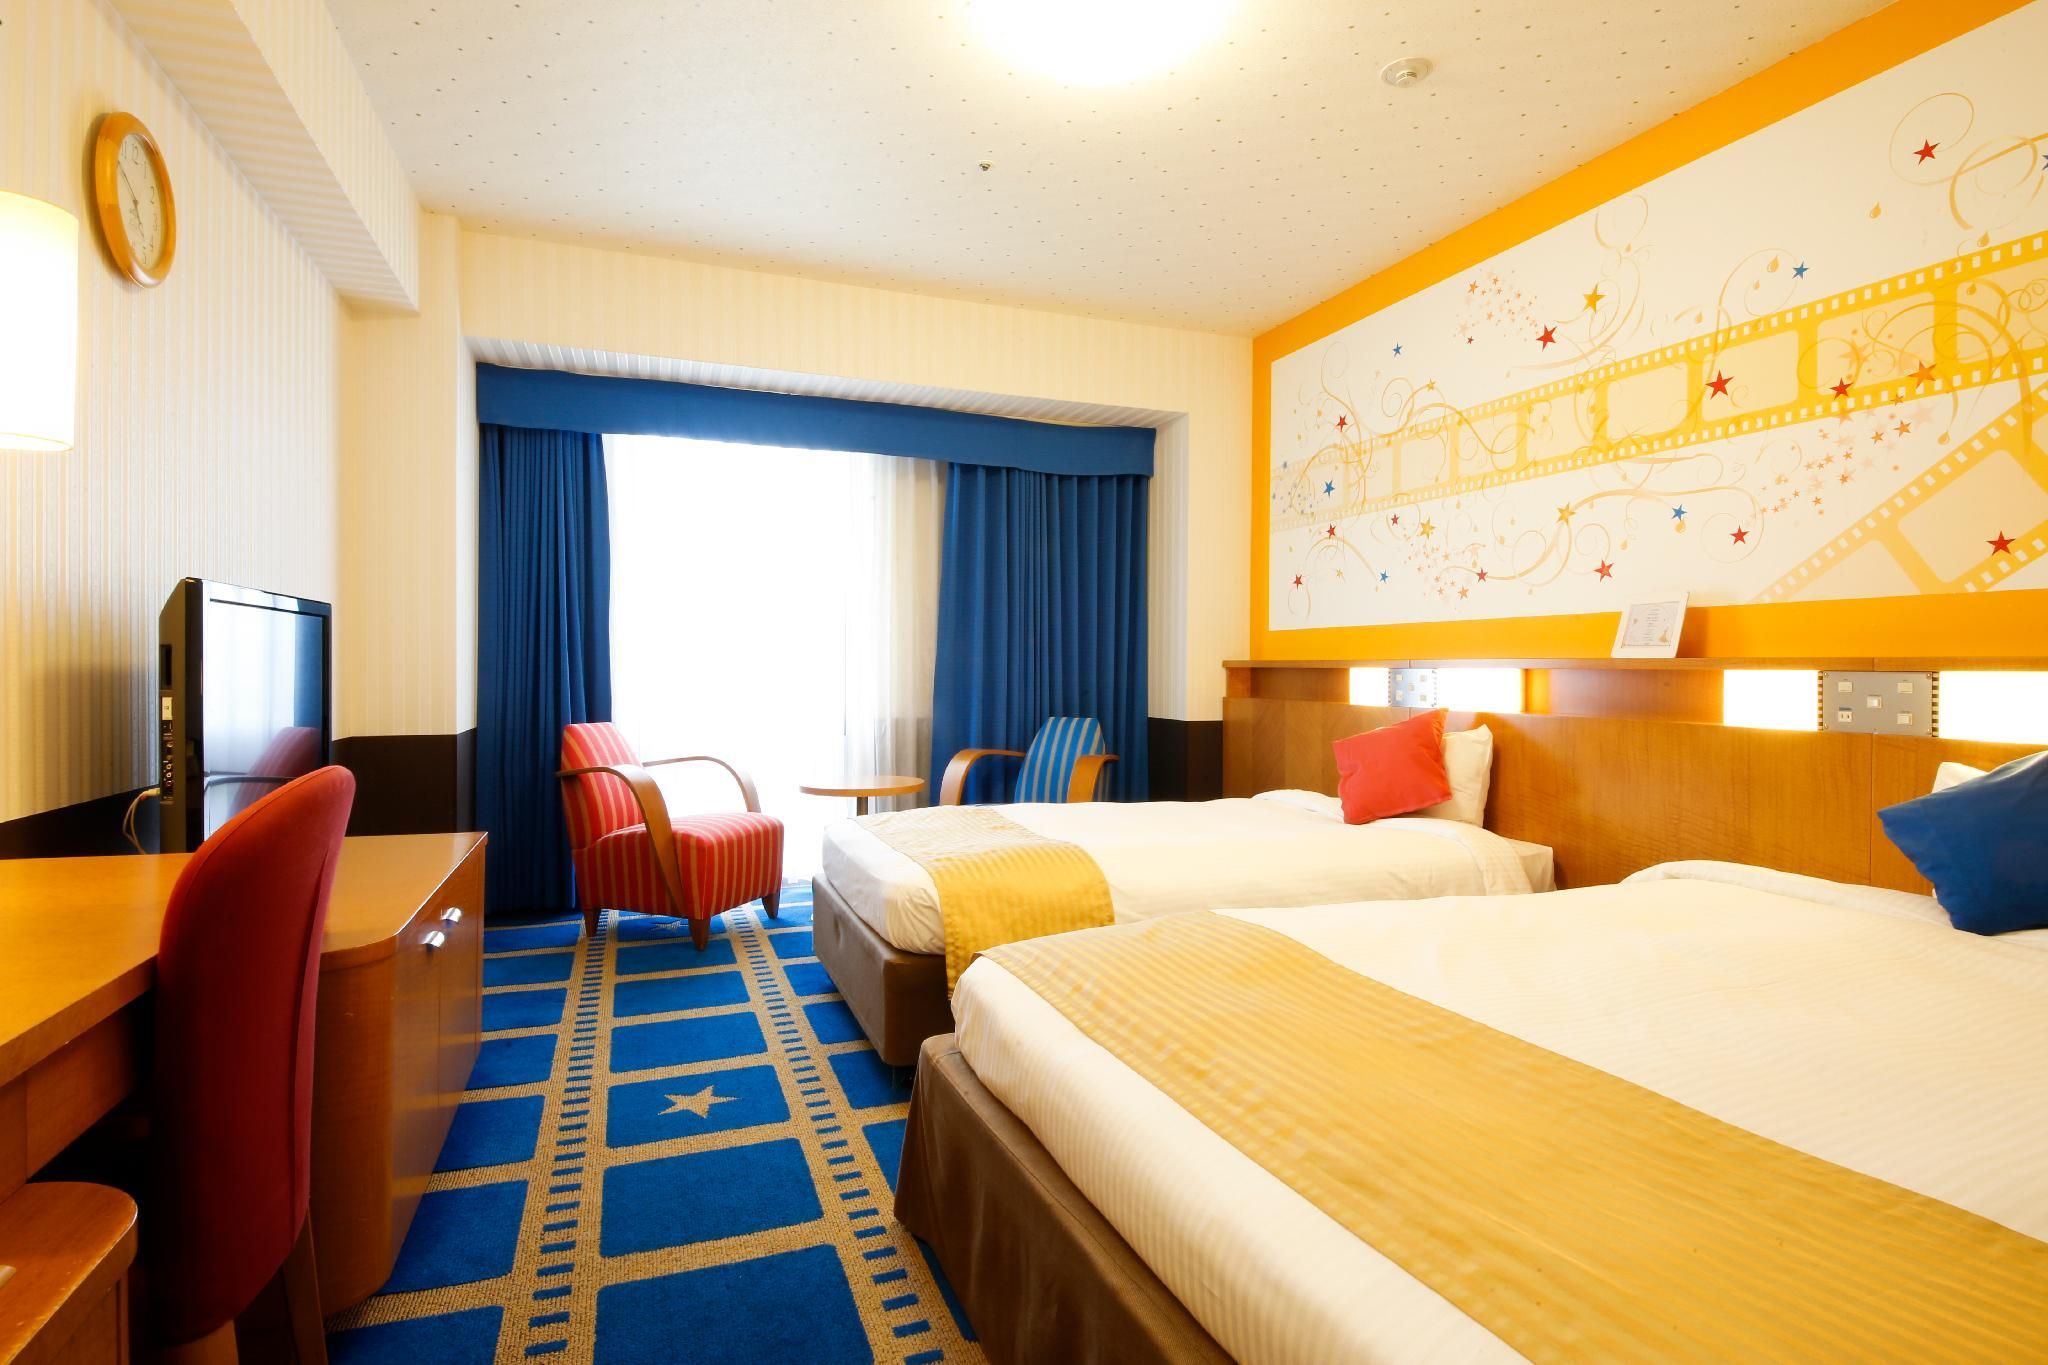 Hotel Keihan Universal City Osaka 4 Star In Japan Voucher Kyoto Sightseeing Pass 1 Day First Slide